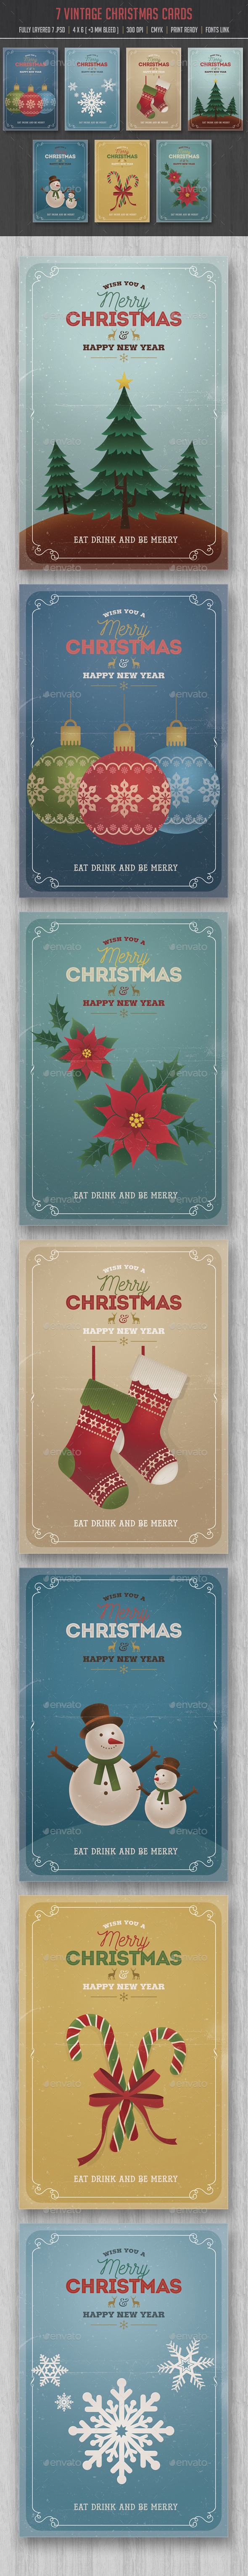 Retro Vintage Christmas Cards/Invitation Pack - Cards & Invites Print Templates